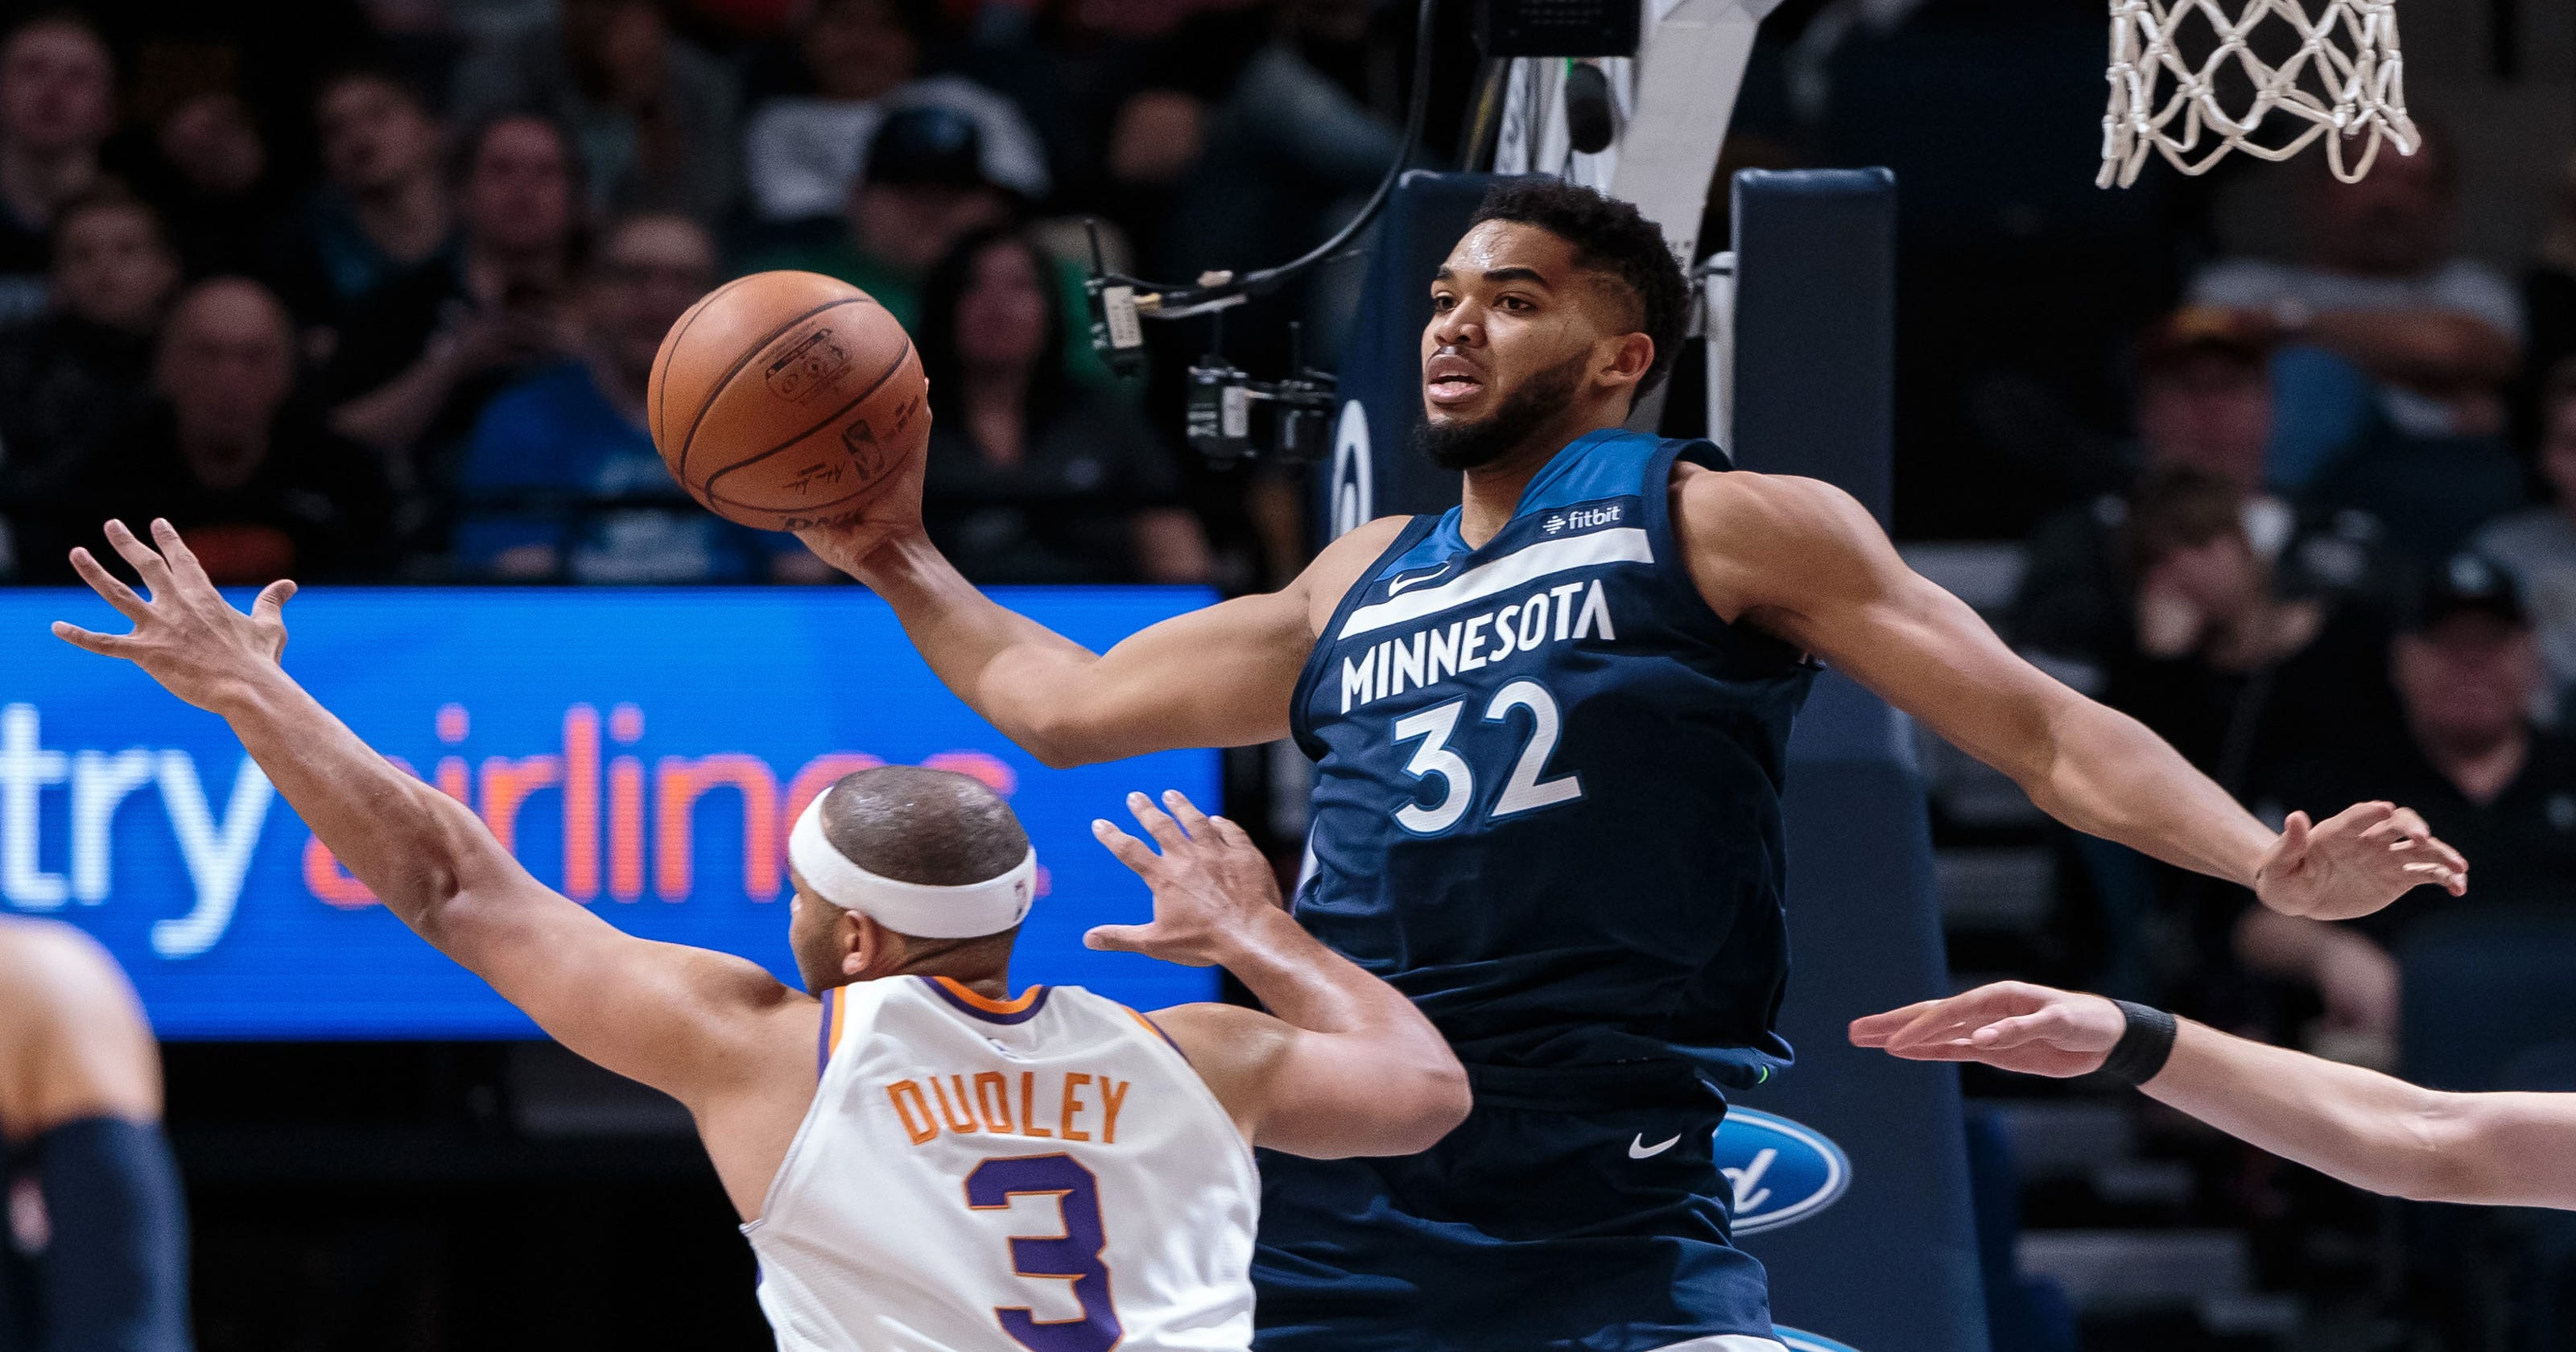 Karl-Anthony Towns scores 32 in Minnesota Timberwolves win over Phoenix Suns 0787098b4